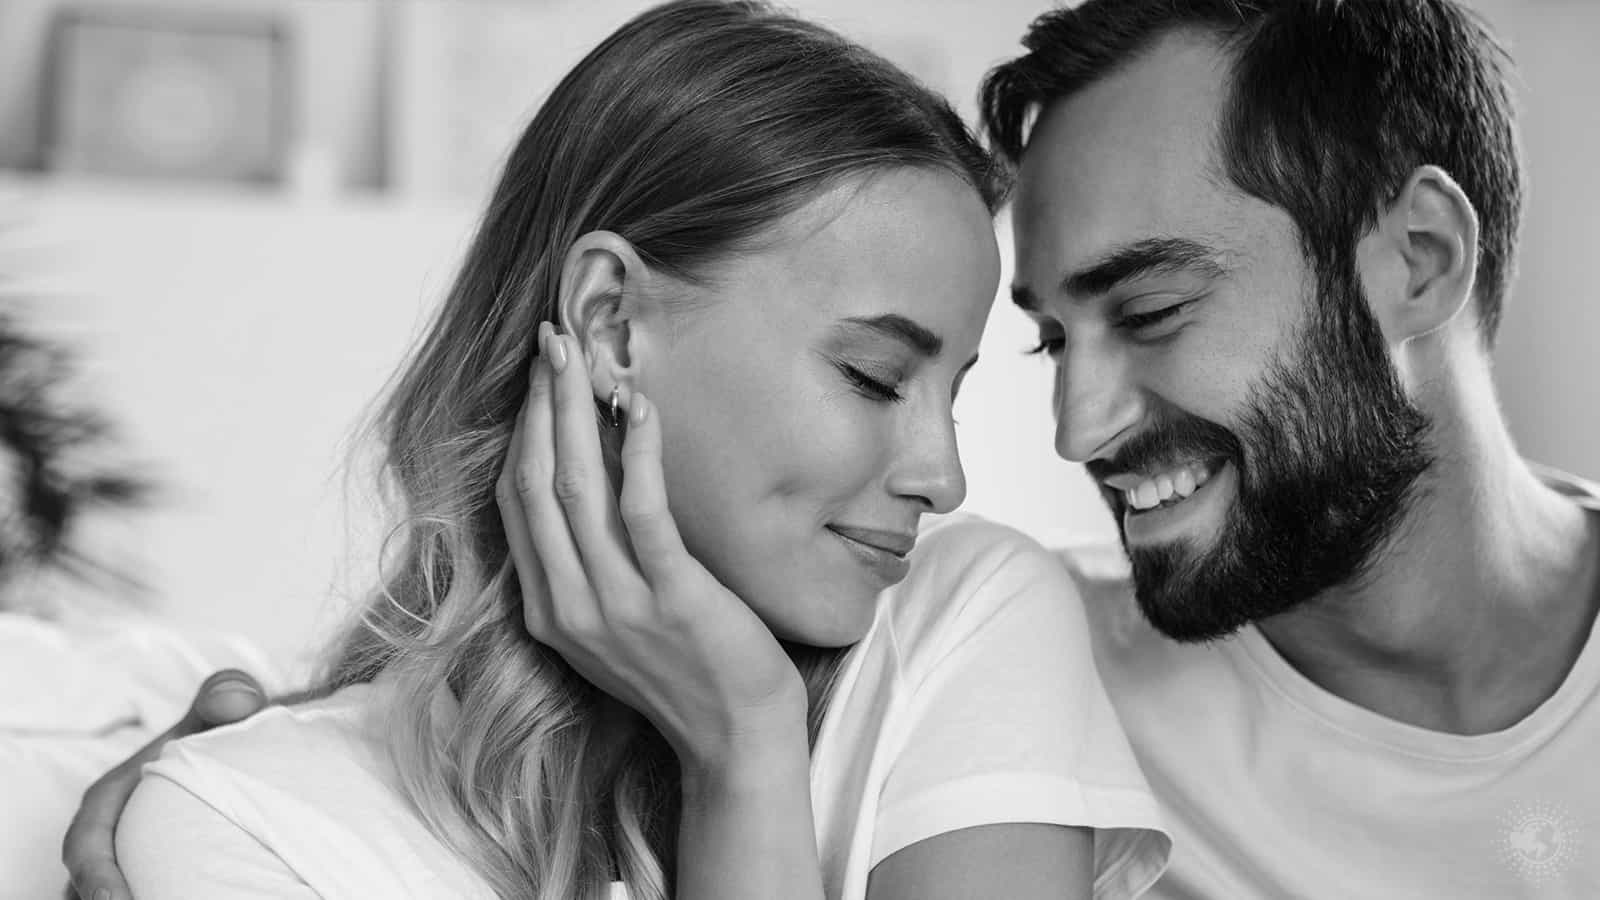 15 Ways a Man Shows Affection >>> 5 Minute Read